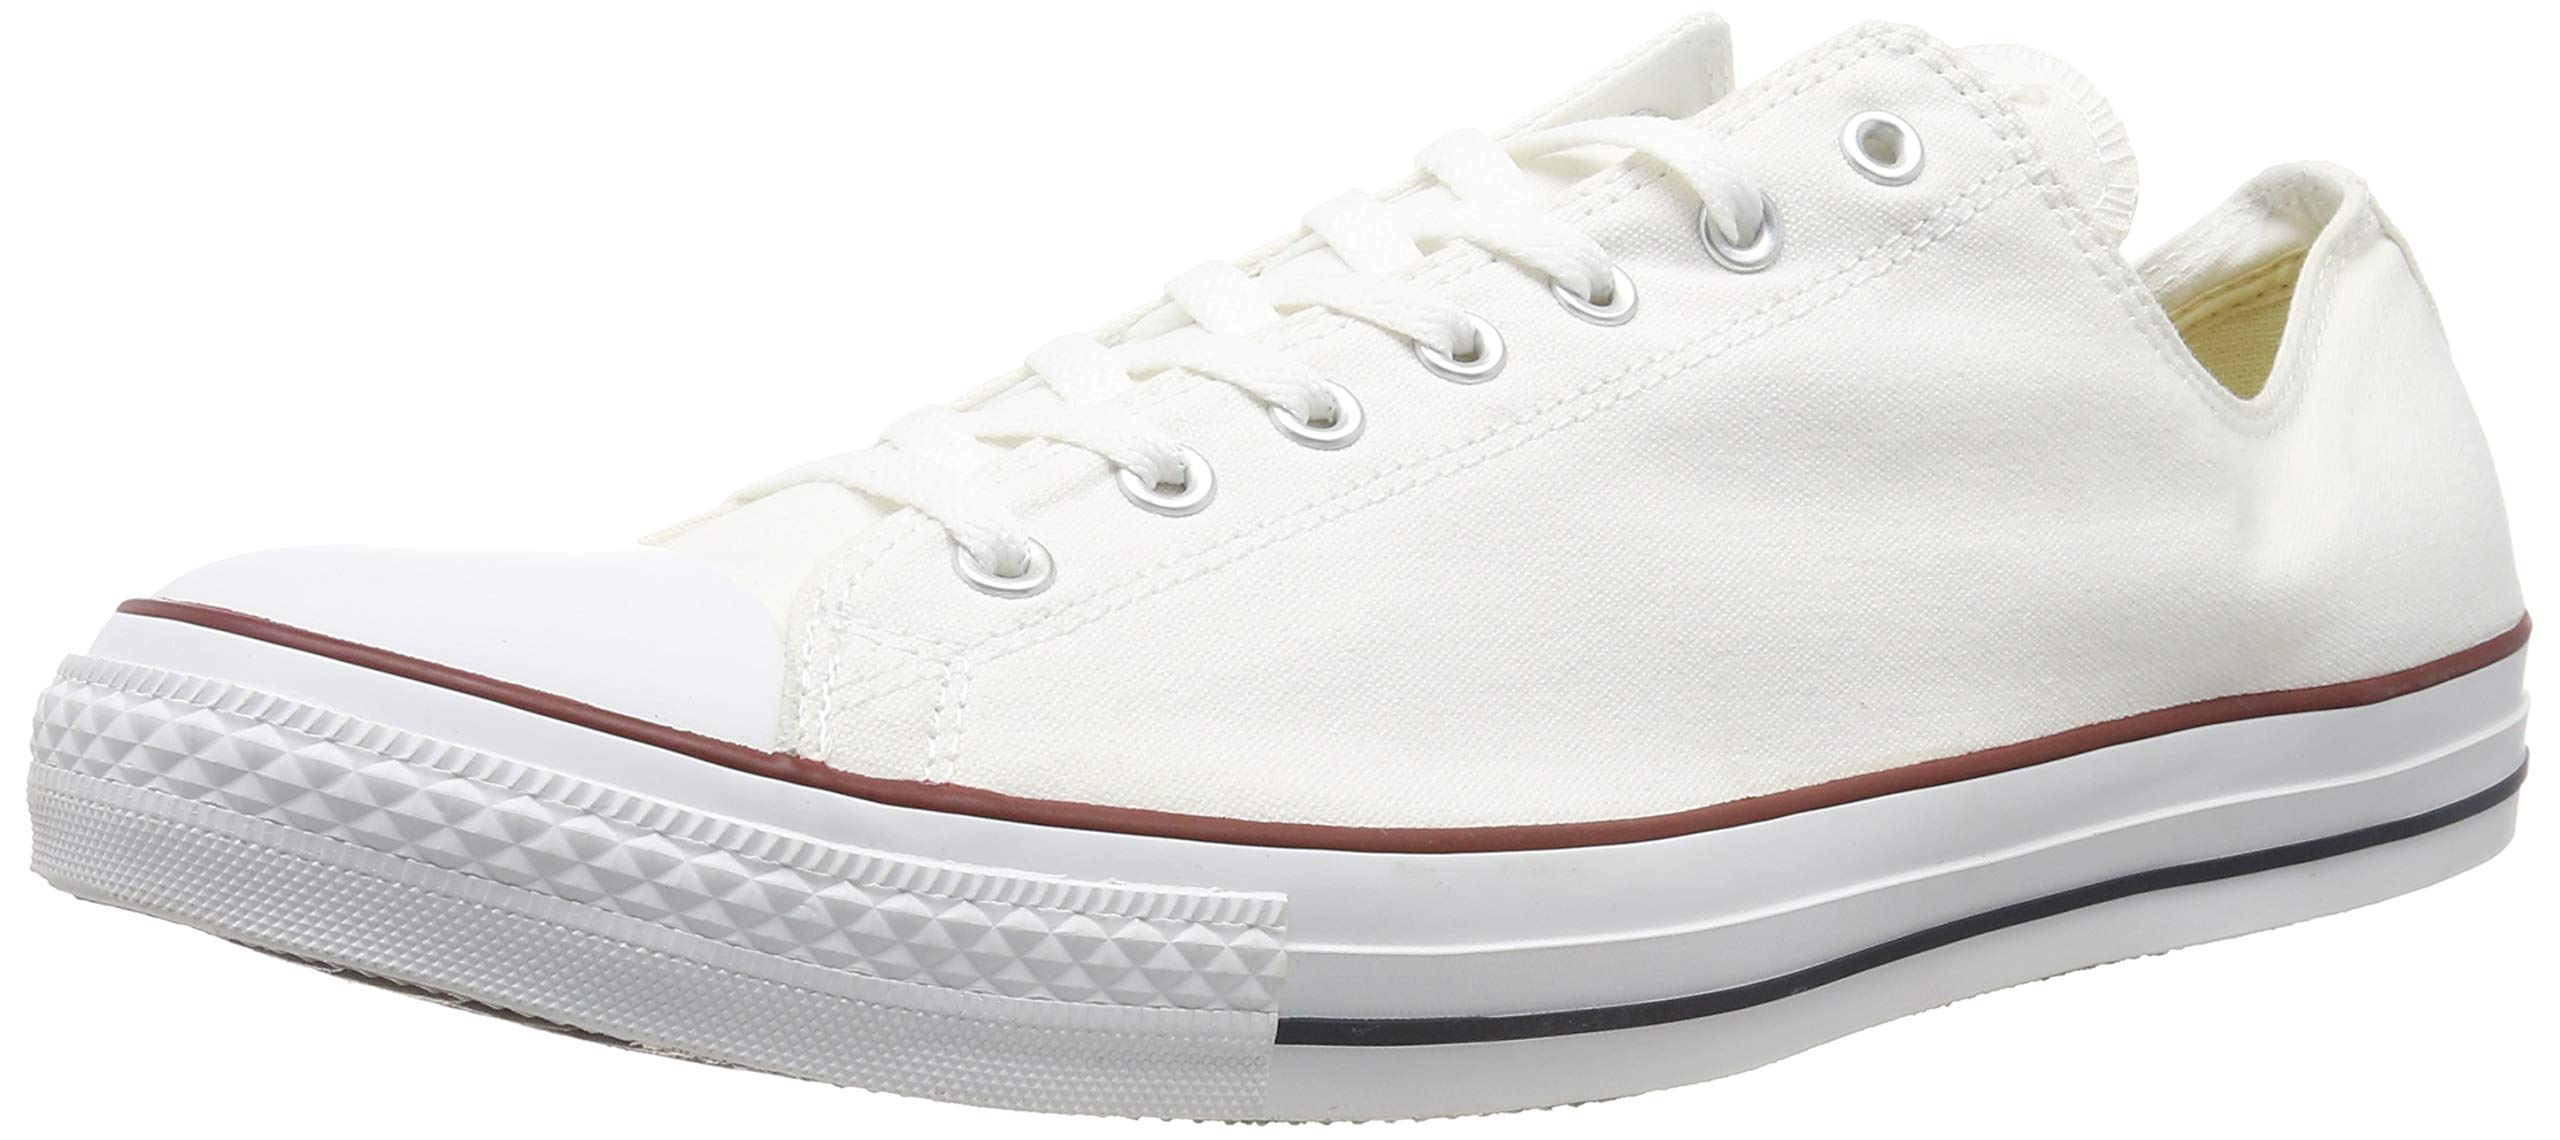 Unisex B Converse 5 D Star mMenOptical Low Sneakers11 mUs White Chuck All Women Top 5 Taylor 9 Canvas SUVqMzp